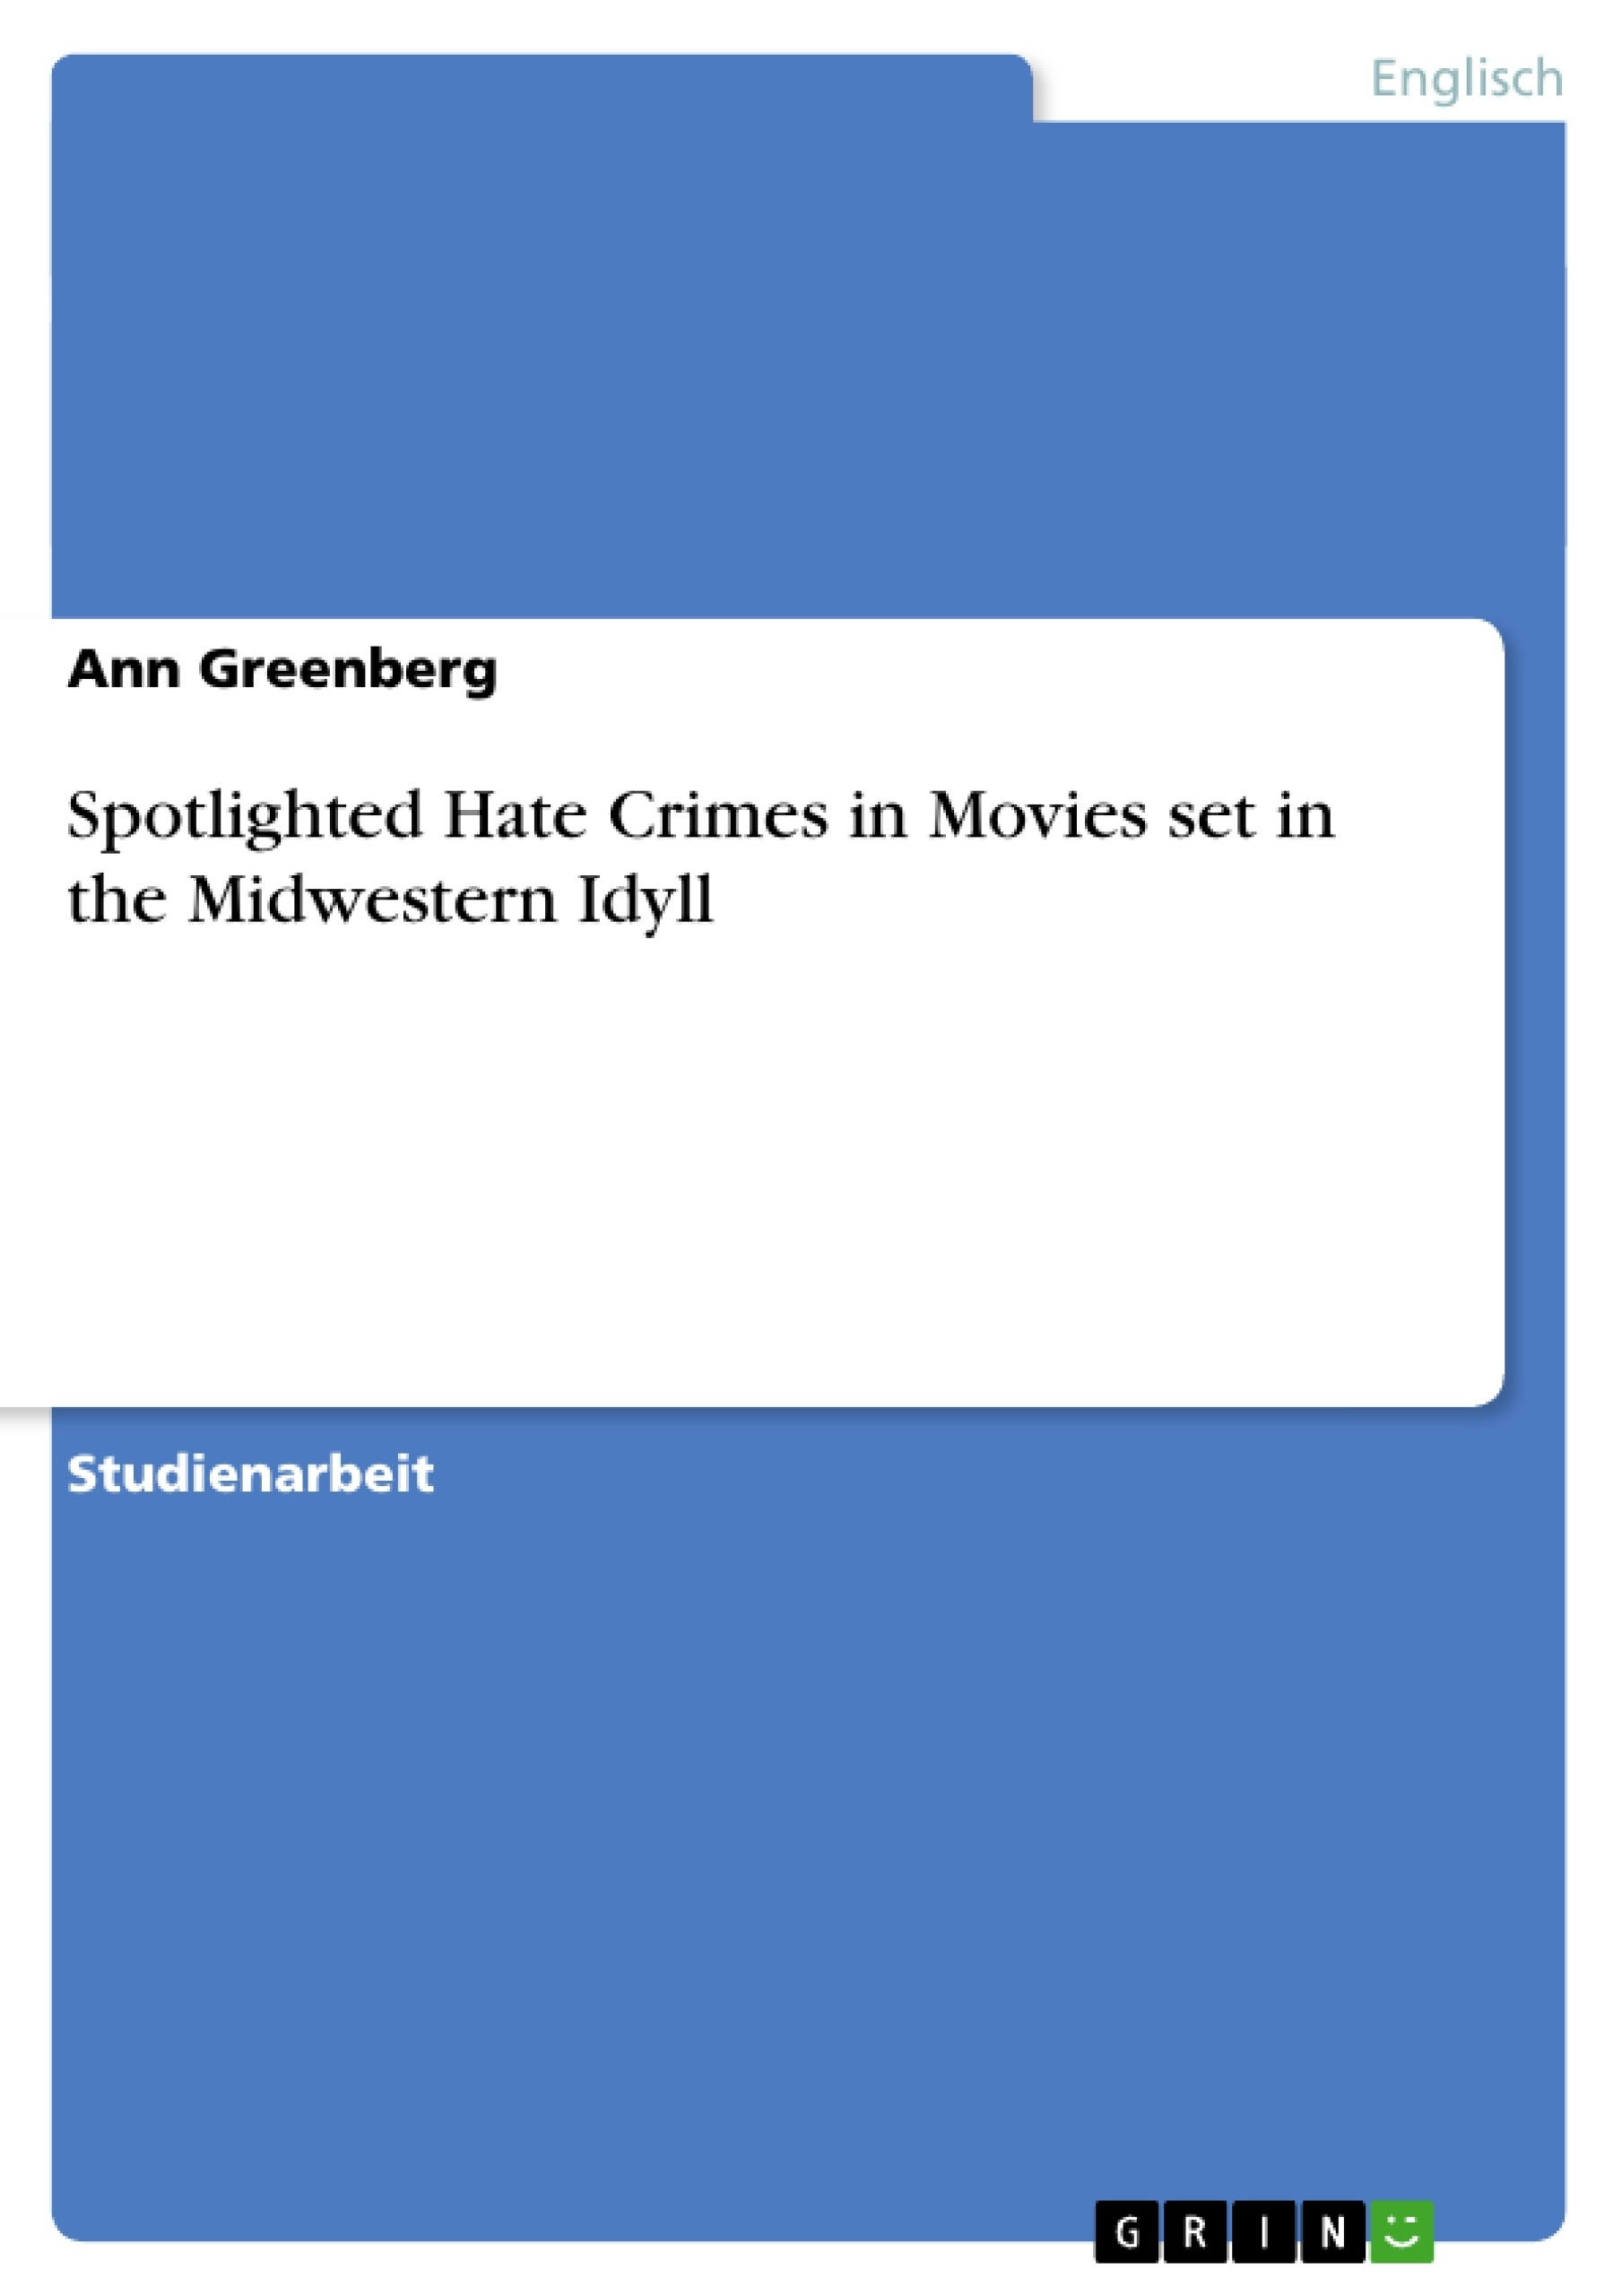 Titel: Spotlighted Hate Crimes in Movies set in the Midwestern Idyll